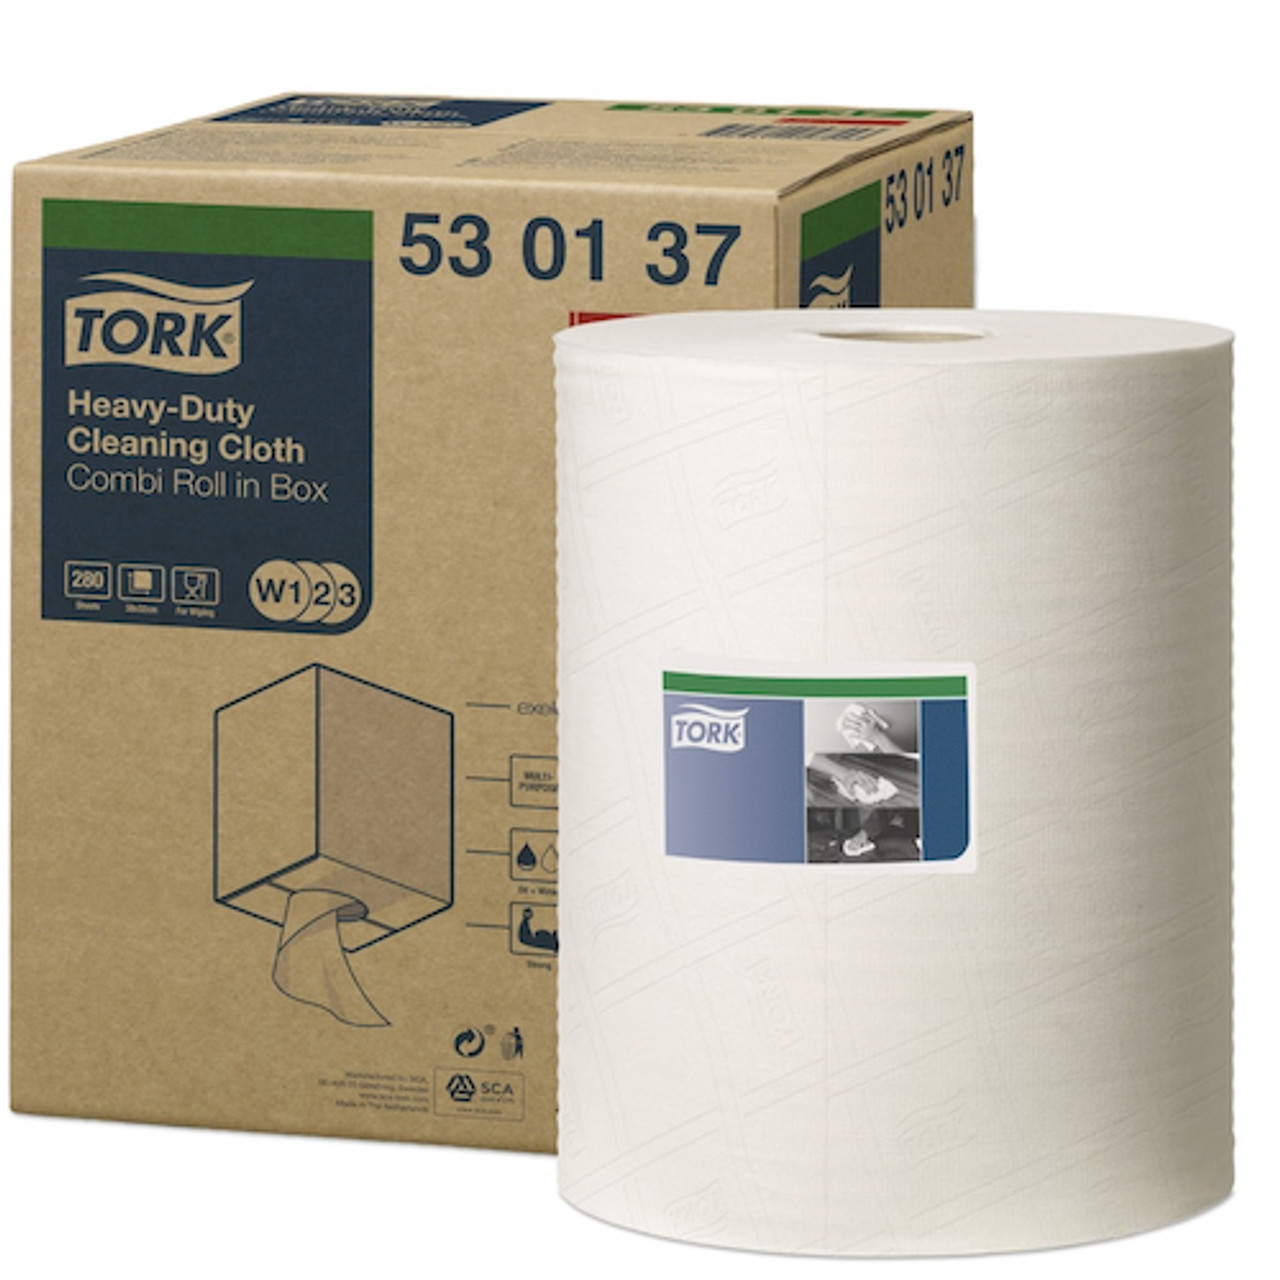 Tork Heavy-Duty Cleaning Cloth Combi 1Ply (530137)